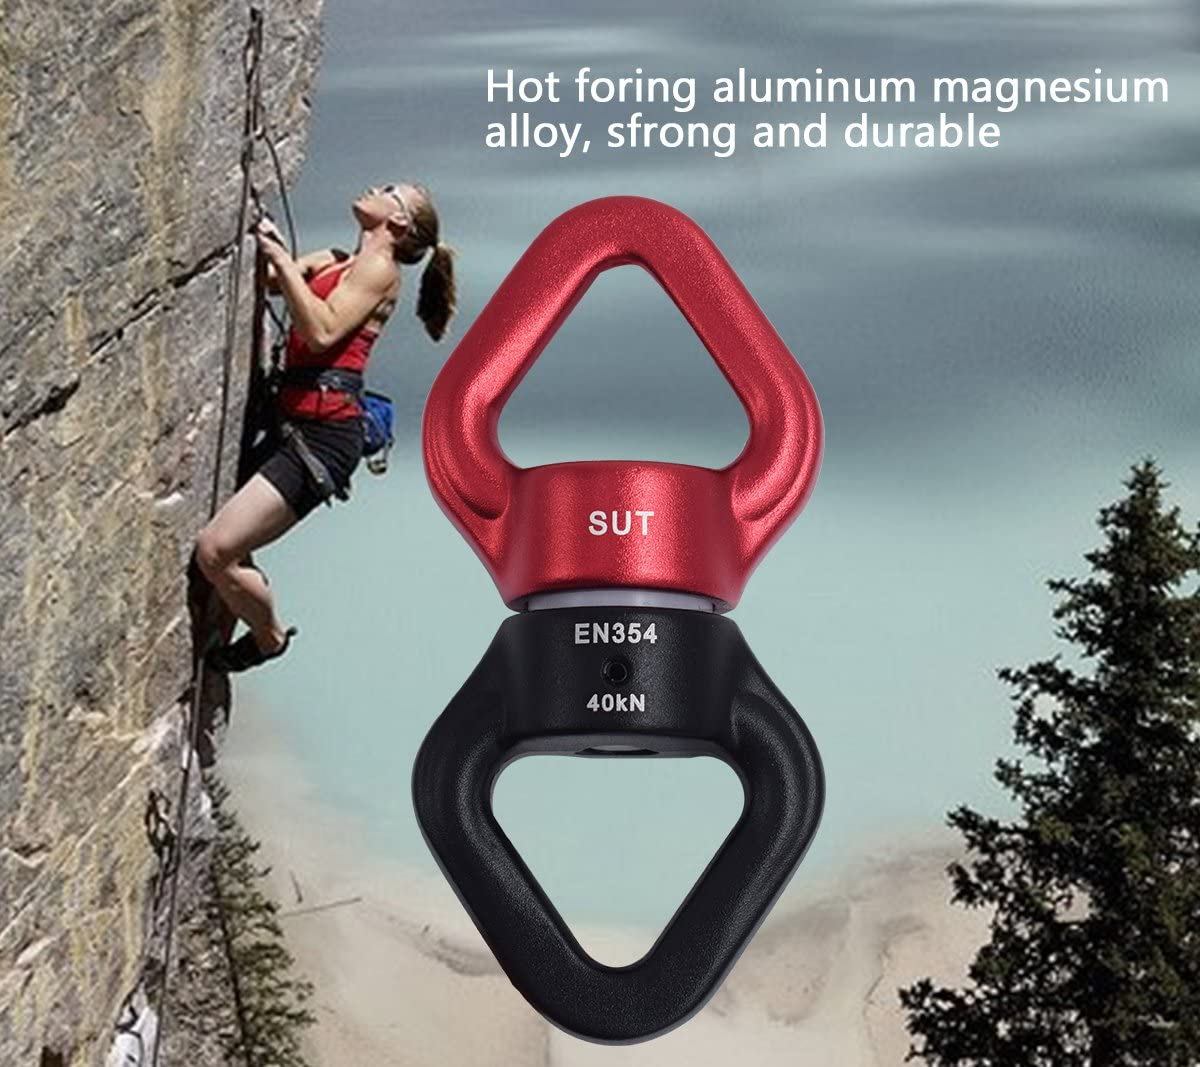 Newdoar Swing Hardware Swivels Safety Rotational Device Hanging for Aerial Dance Climbing Swing Setting